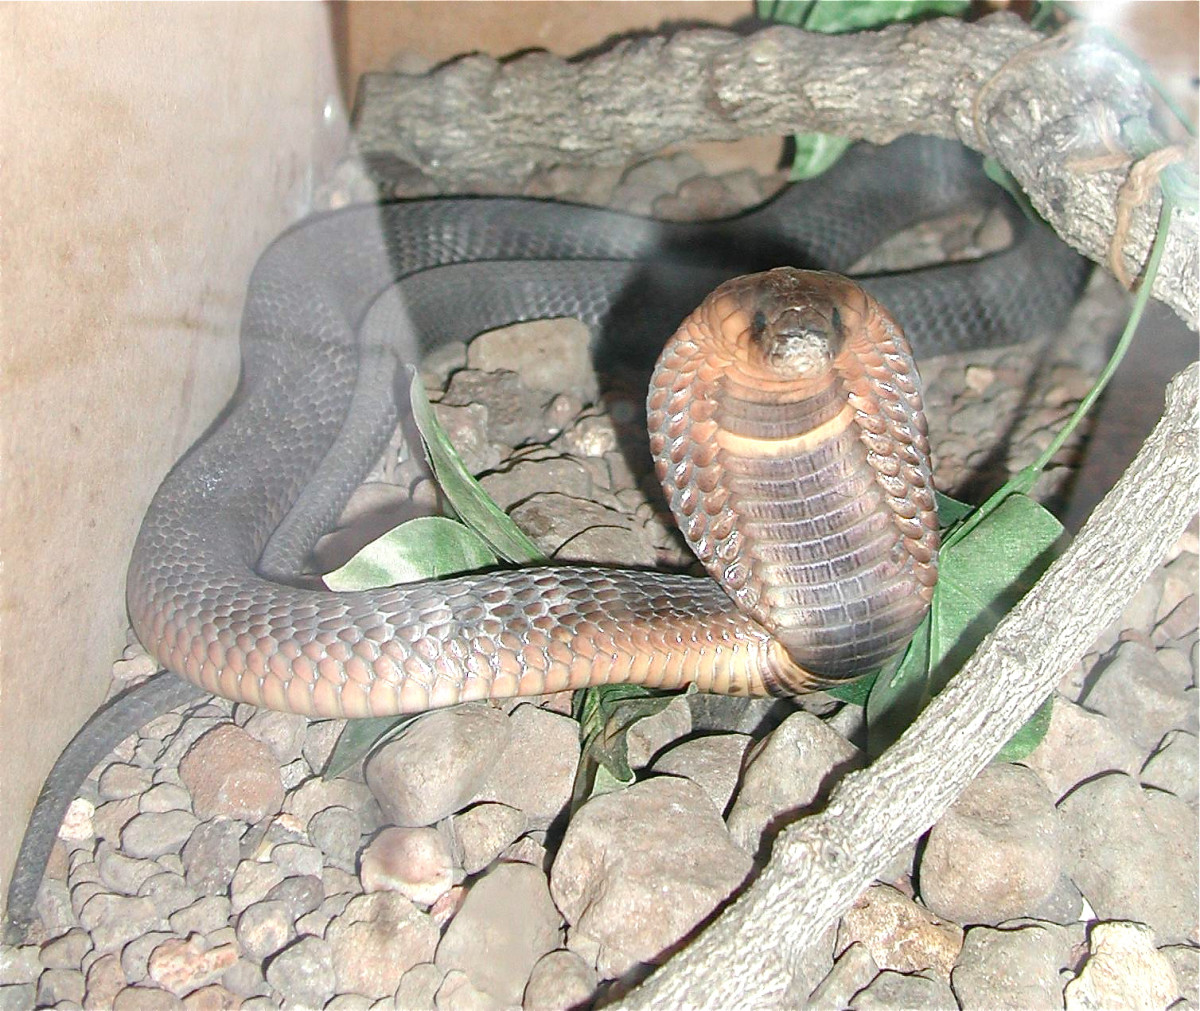 An Egyptian cobra with its hood expanded